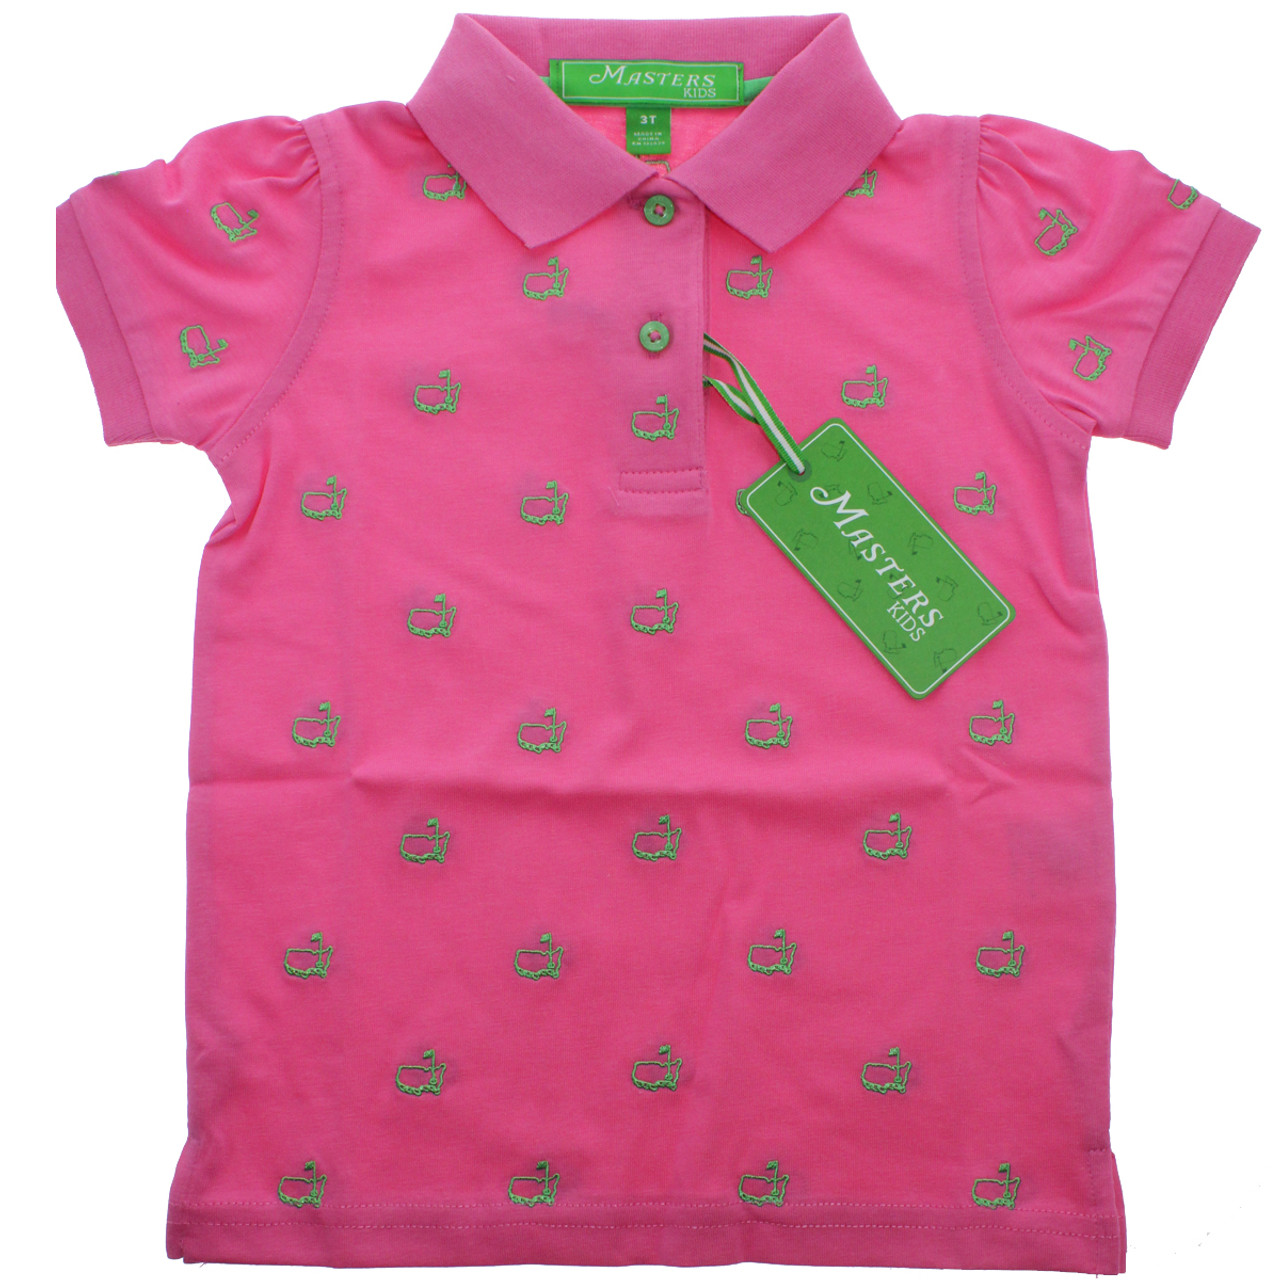 051e37cd Masters Pink Toddler Polo Shirt